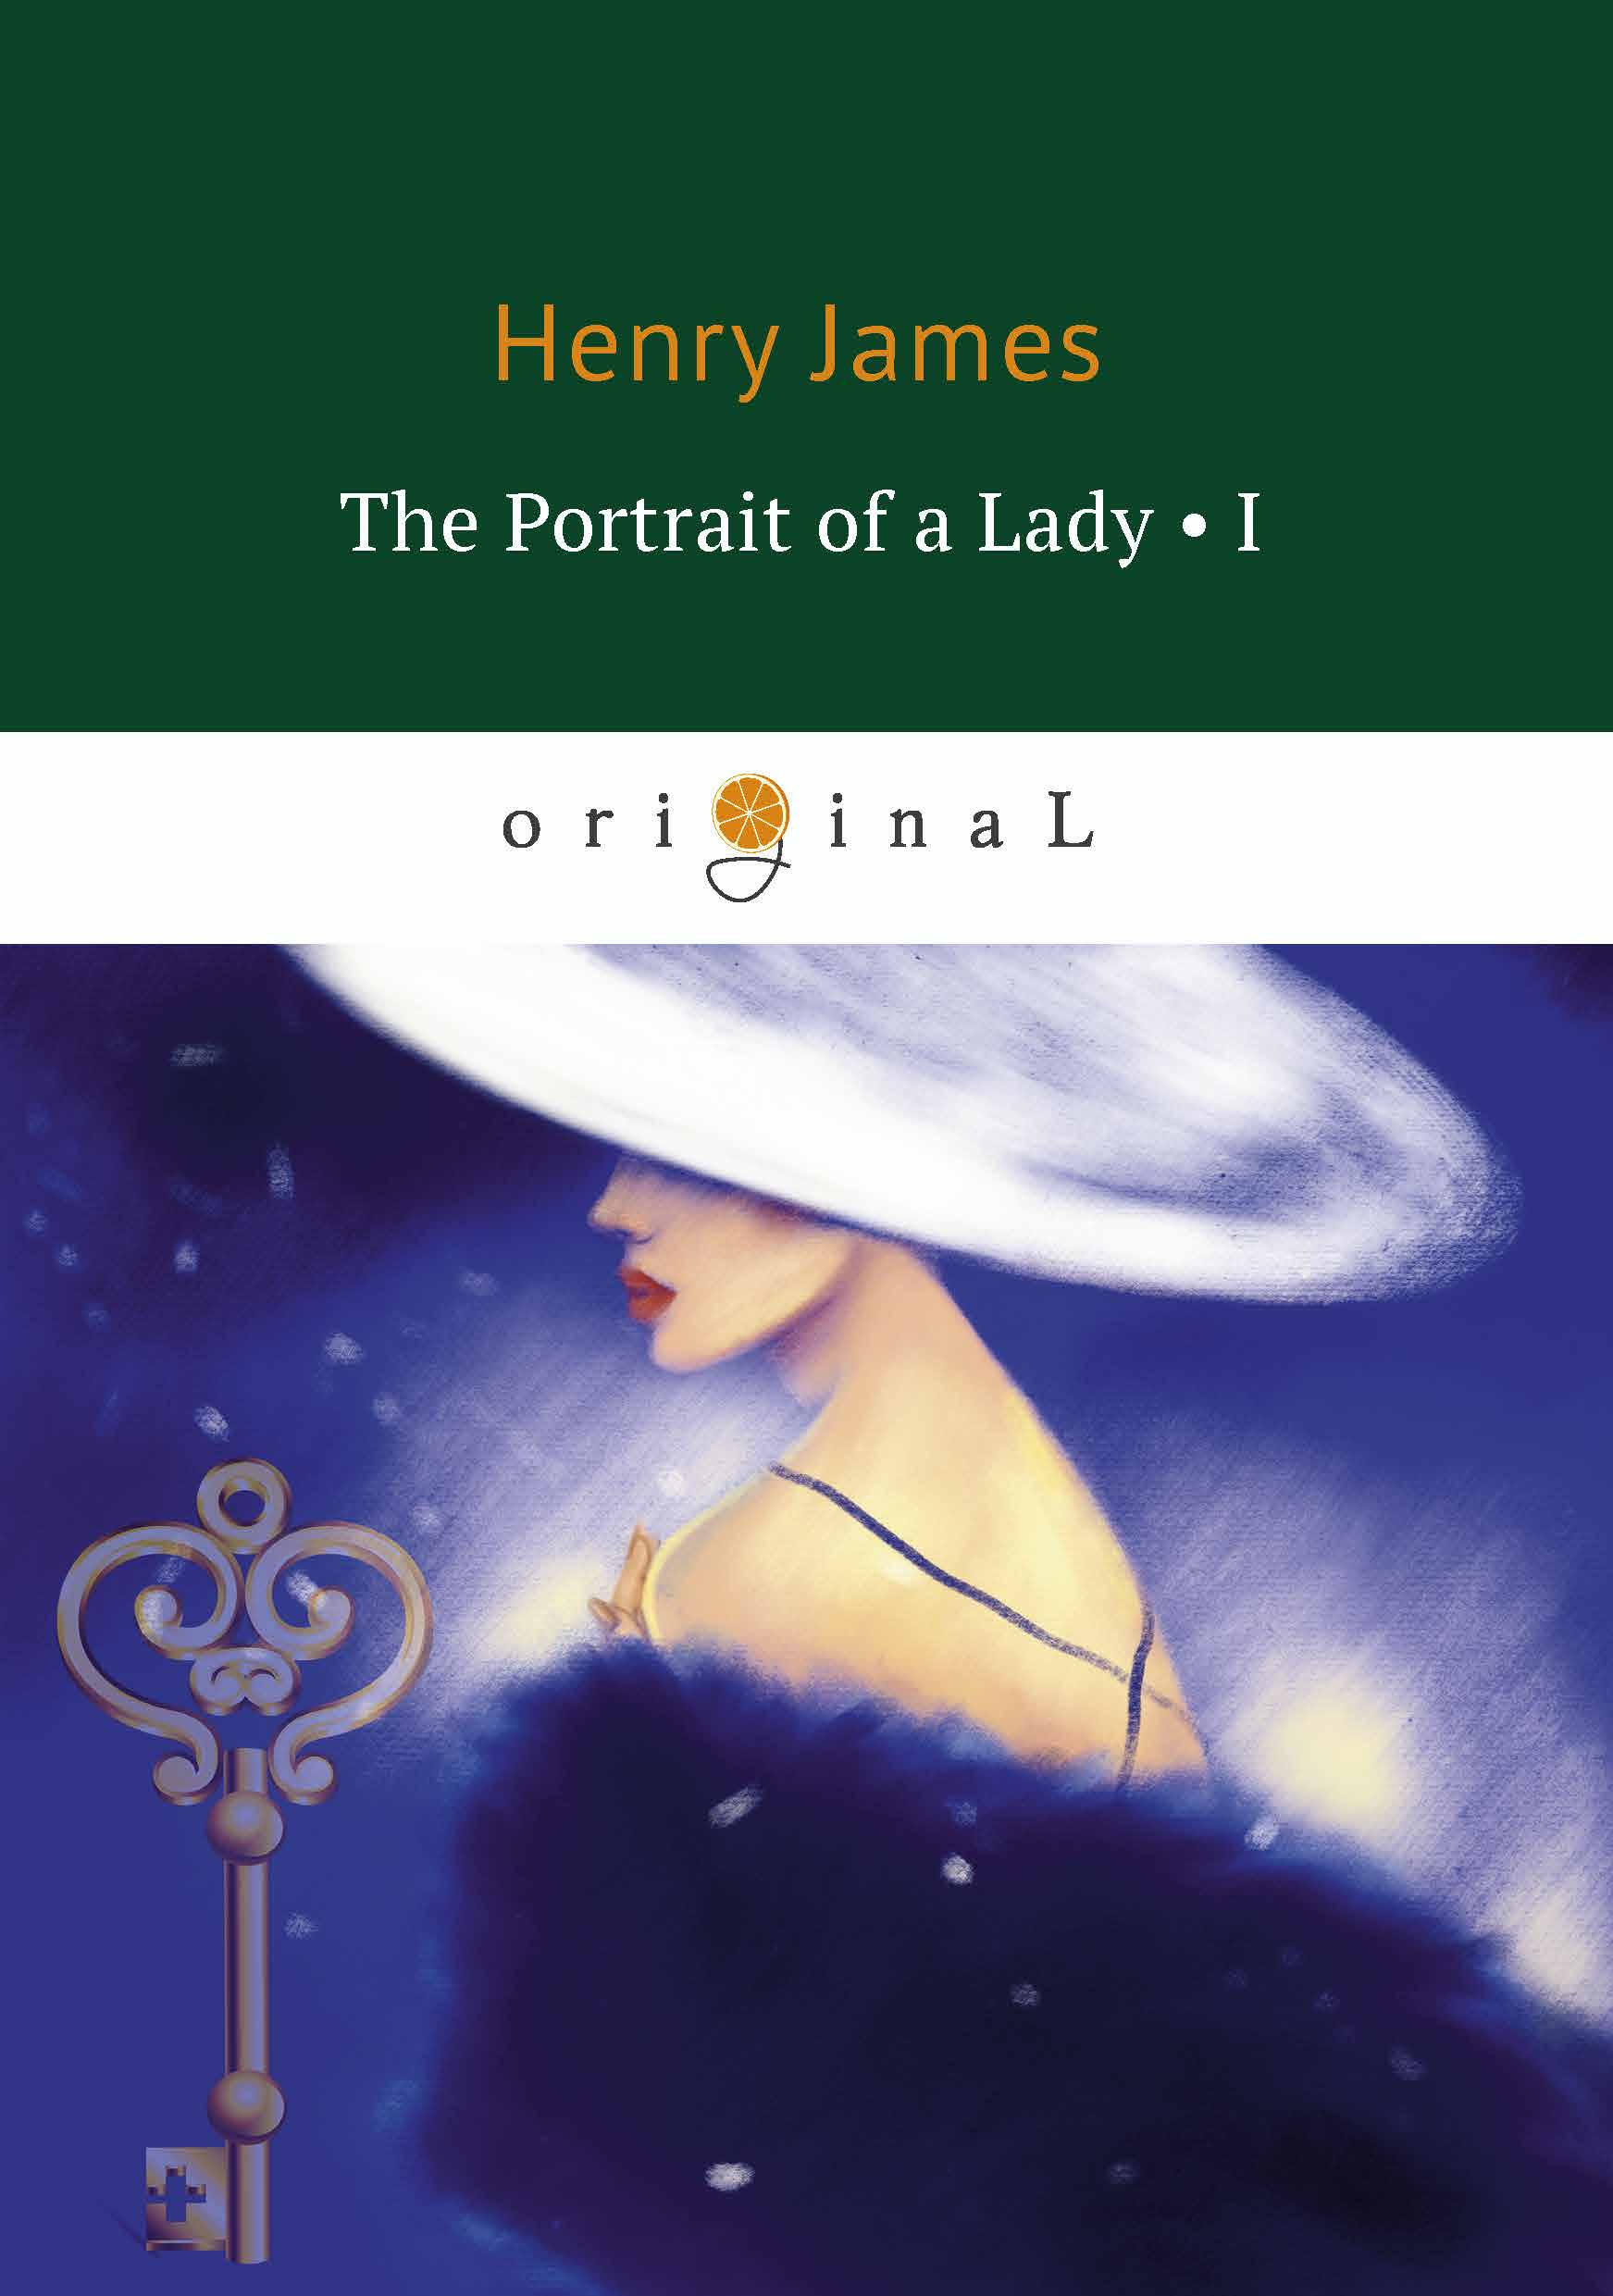 Henry James The Portrait of a Lady I